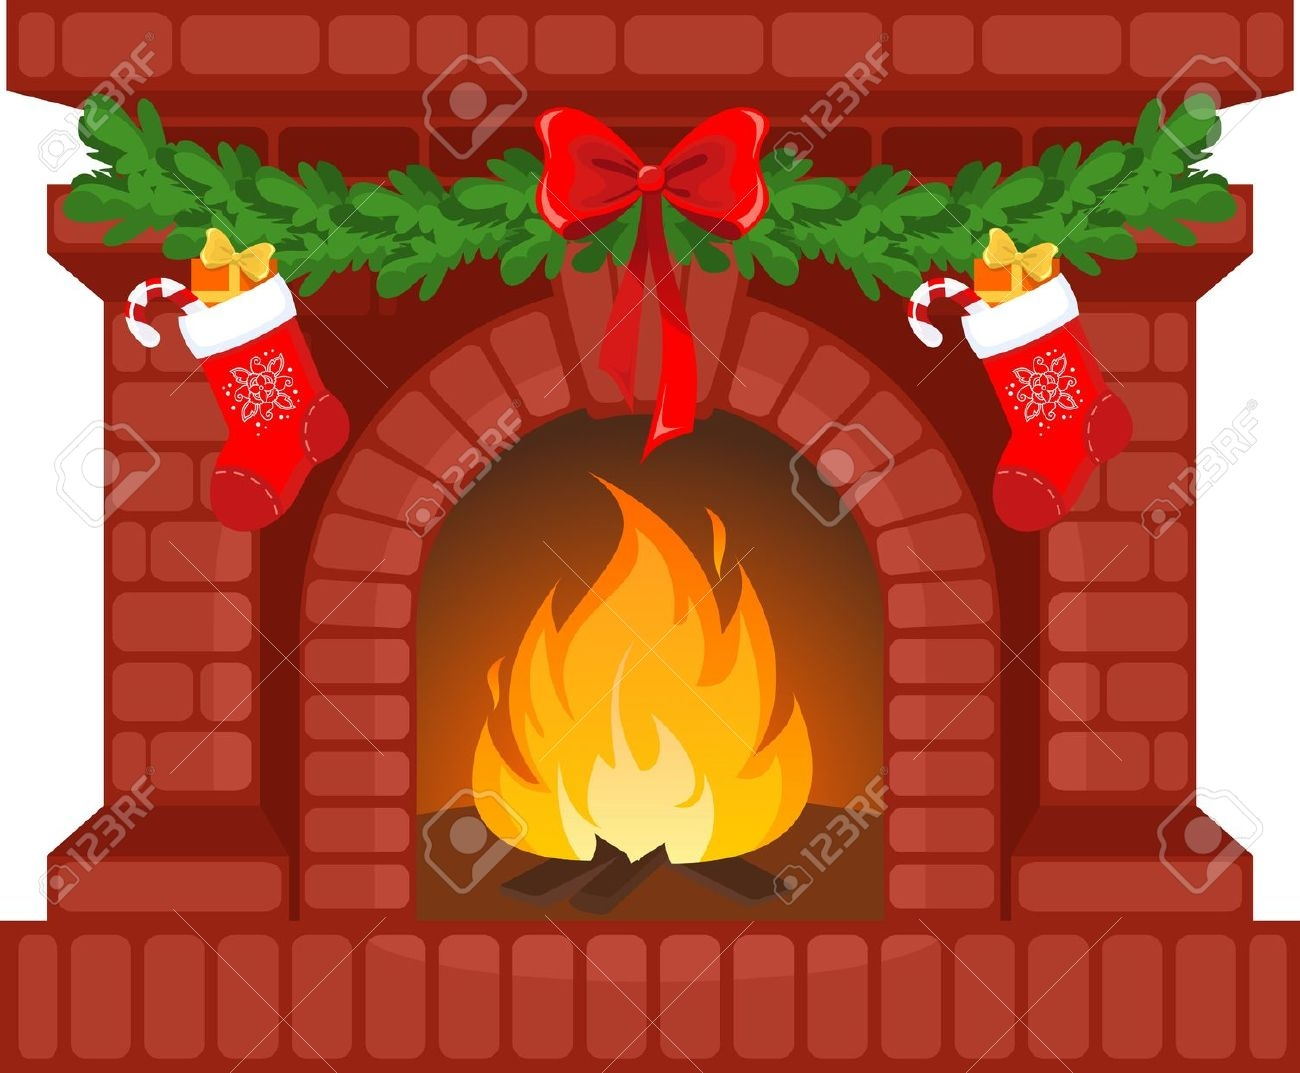 Animated christmas fireplace clipart